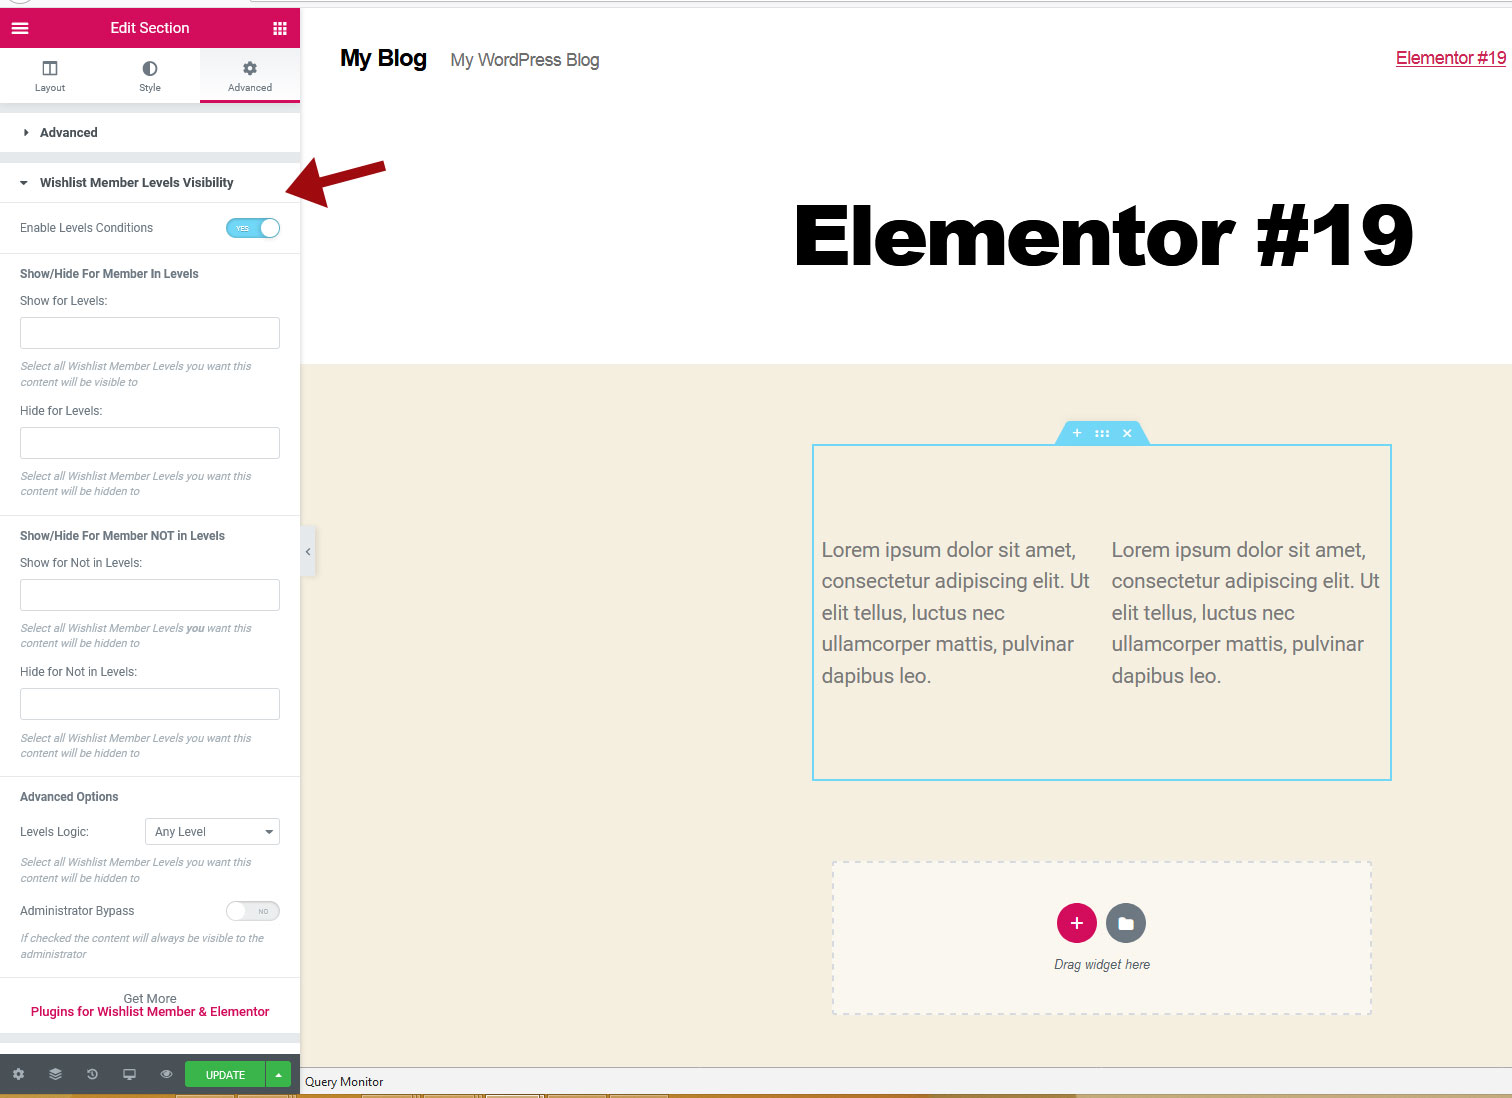 Dynamic-Visibility-for-Wishlist-Member-and-Elementor-settings